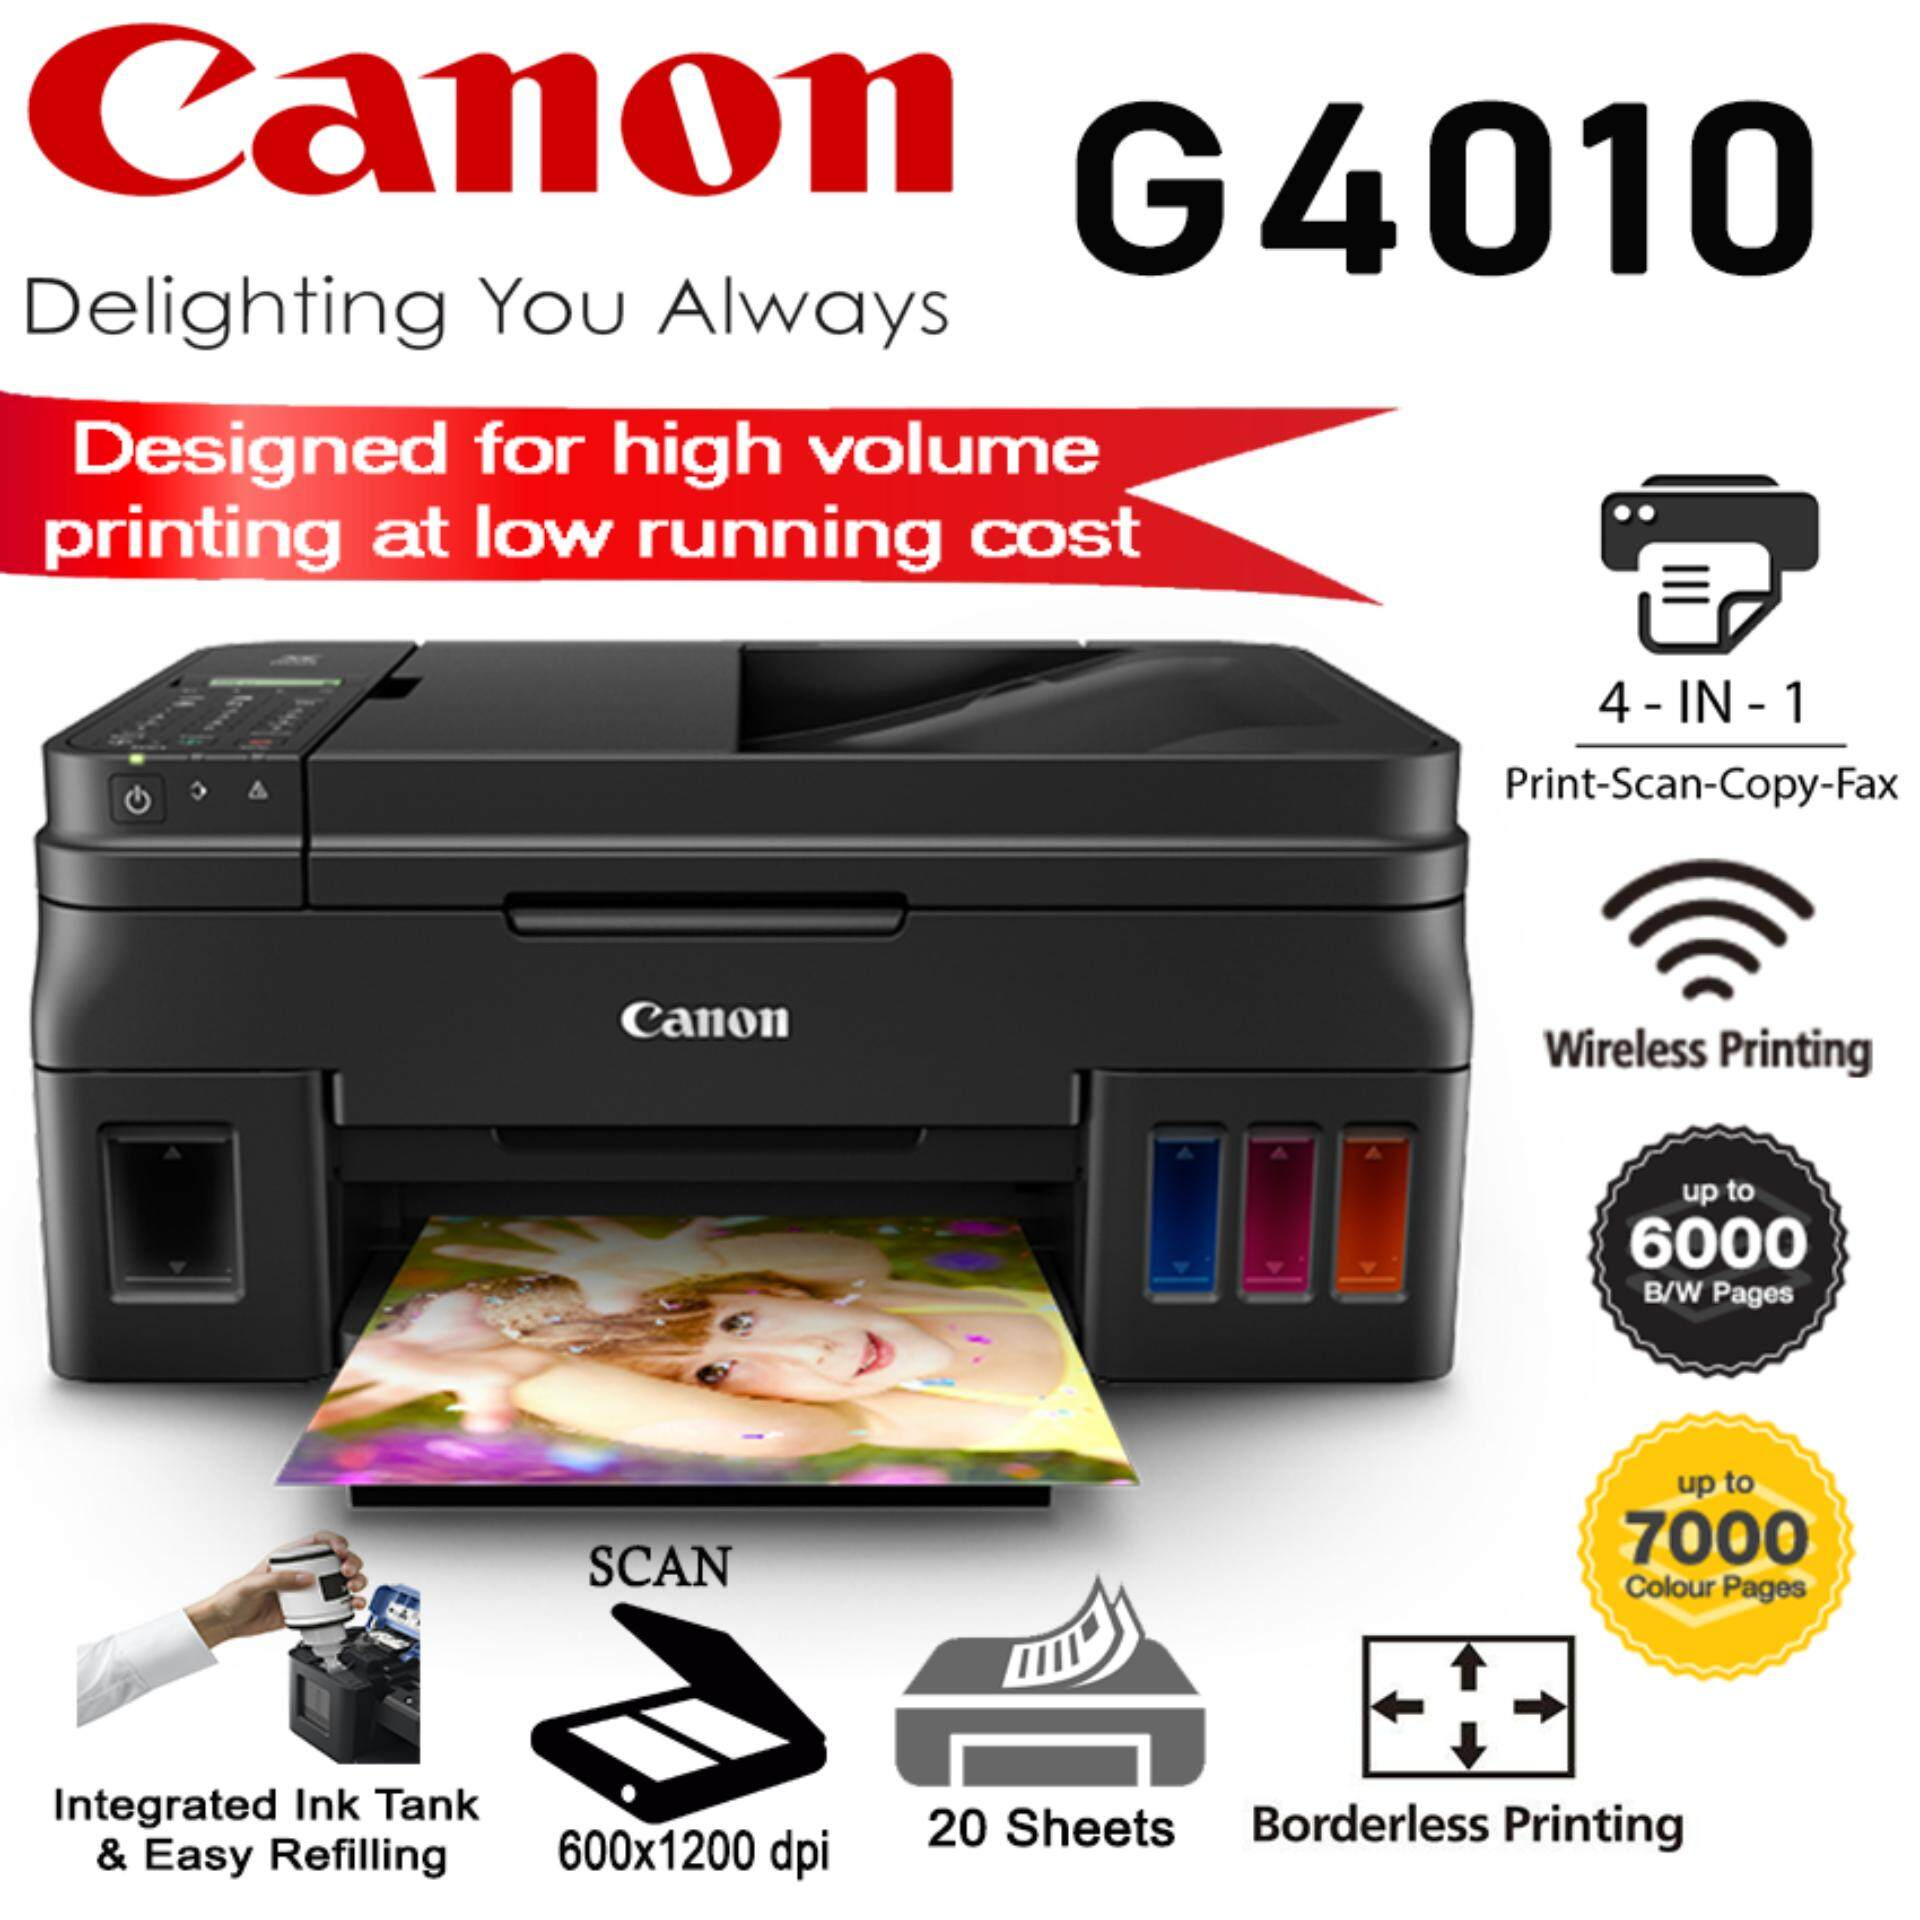 Promo Harga How To Fix G2000 Blinking 7 Times The Ink